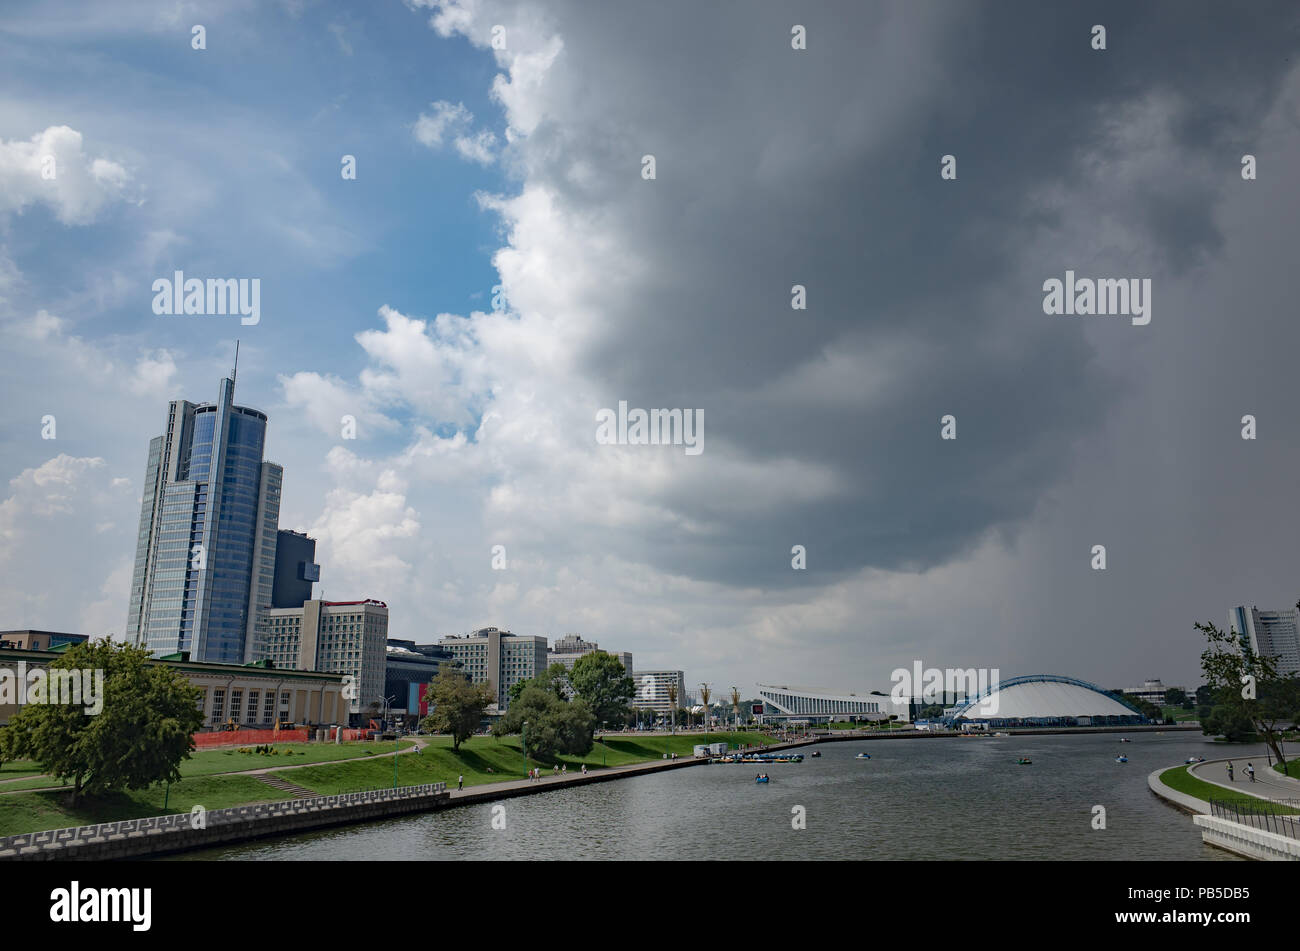 City center. Minsk is the capital of Belarus. Embankment of the Svisloch River. Palace of Sports. - Stock Image